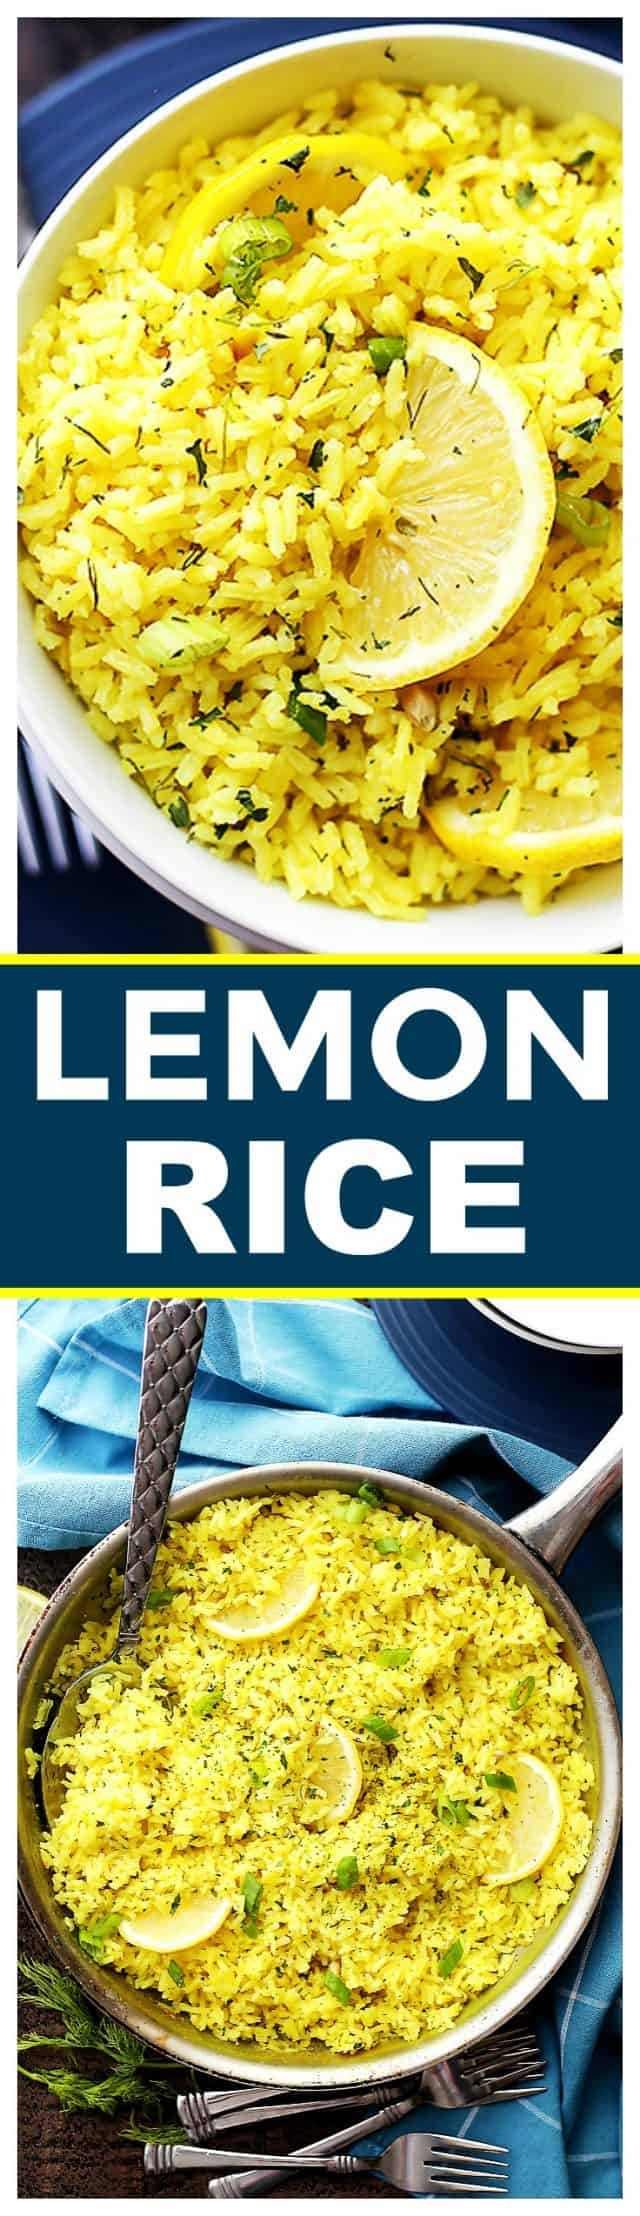 Lemon Rice Recipe - Bursting with lemon flavor, this is a delicious way to turn plain rice into an exotic dish, and it's the perfect accompaniment to any meats and/or veggies.